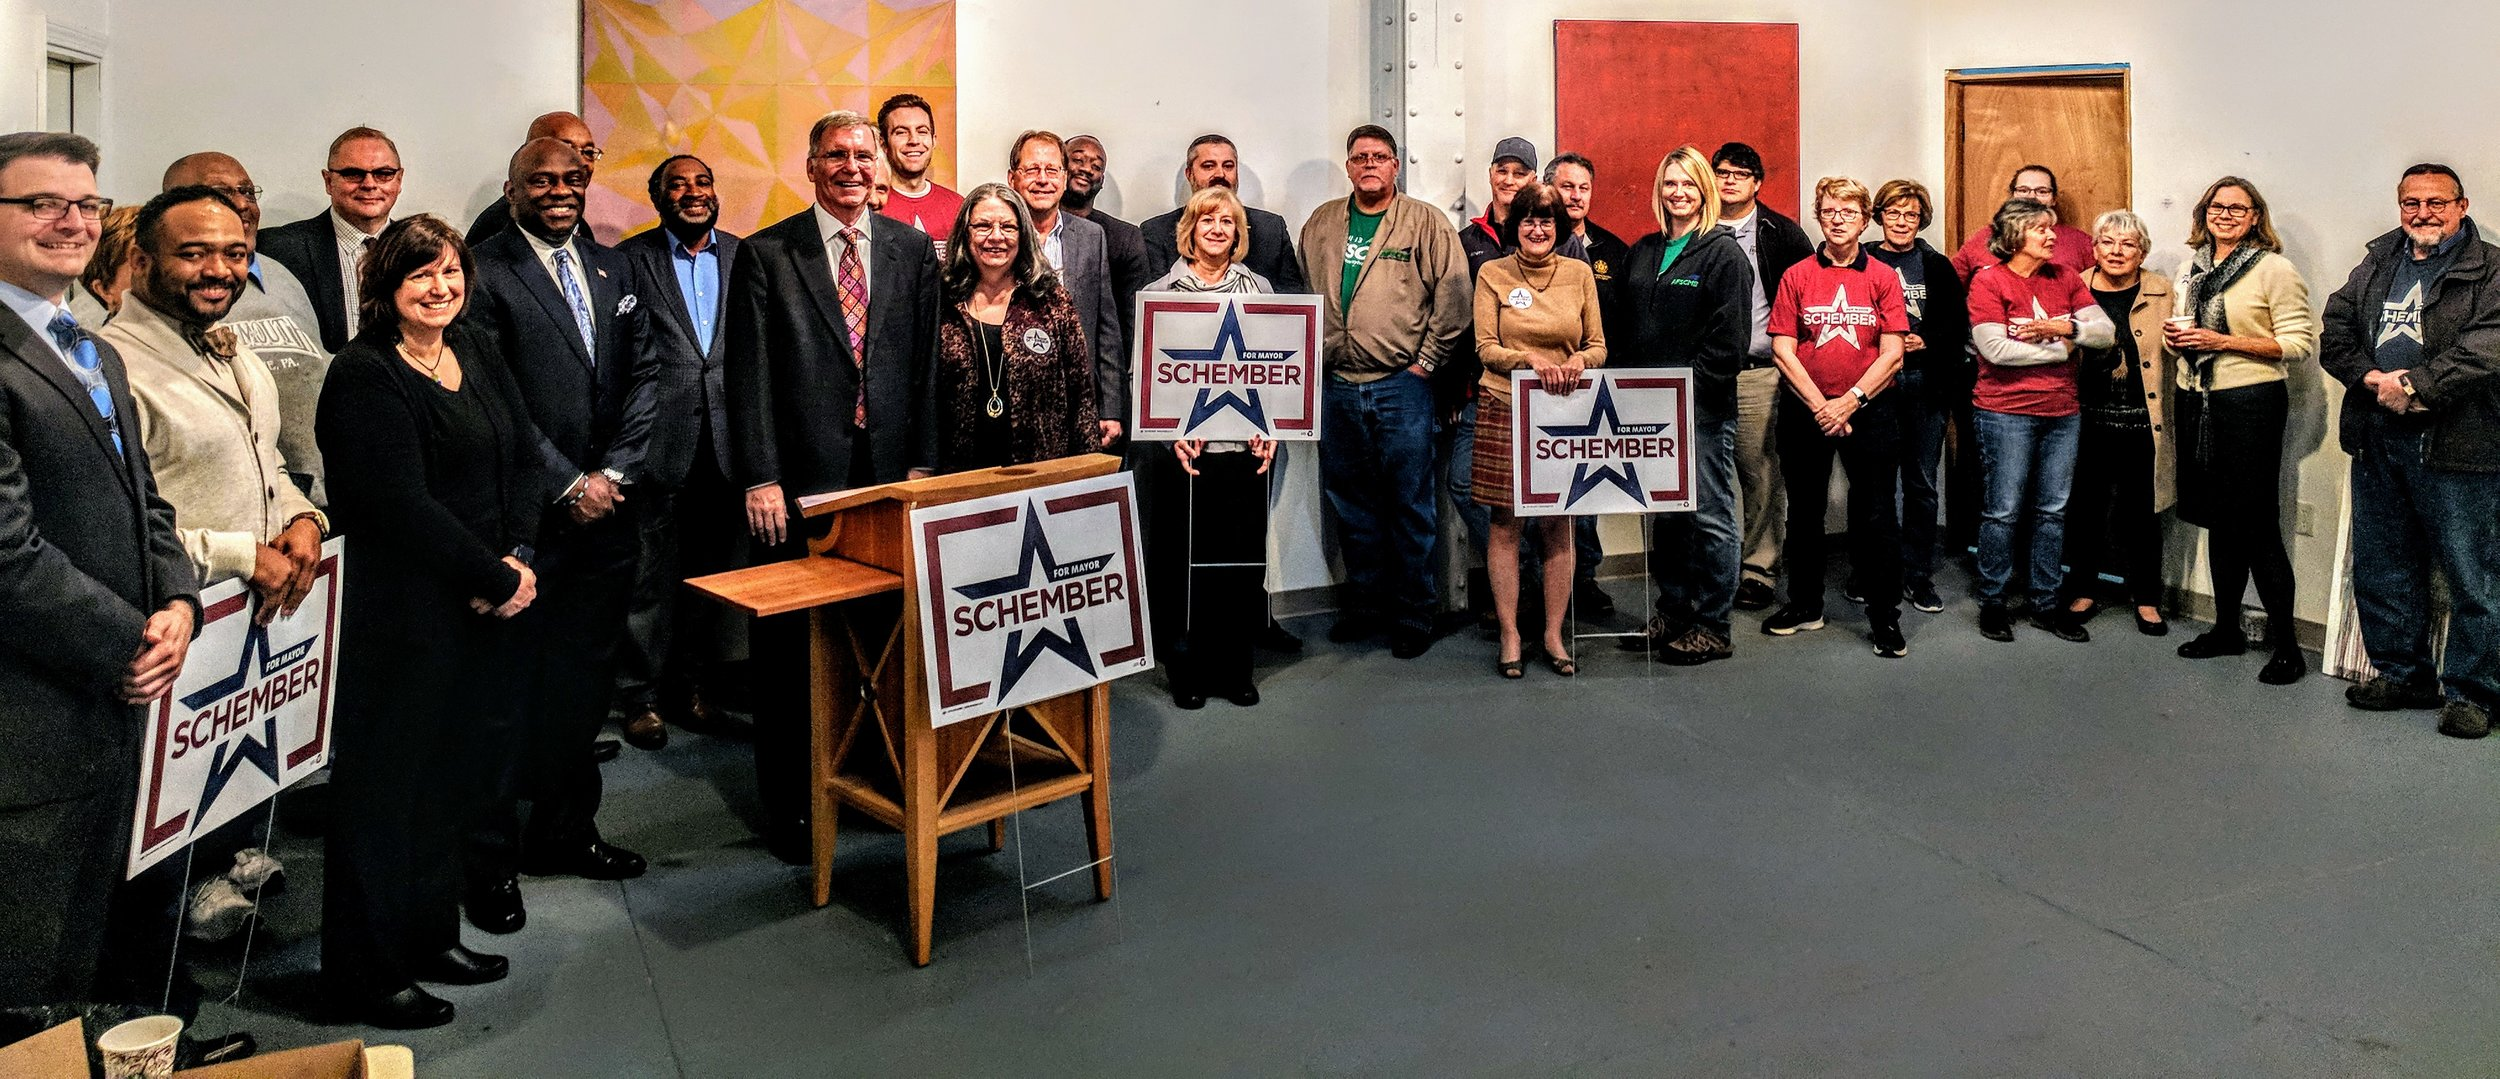 Schember is endorsed by 40+ local elected officials, business and community leaders for Mayor.